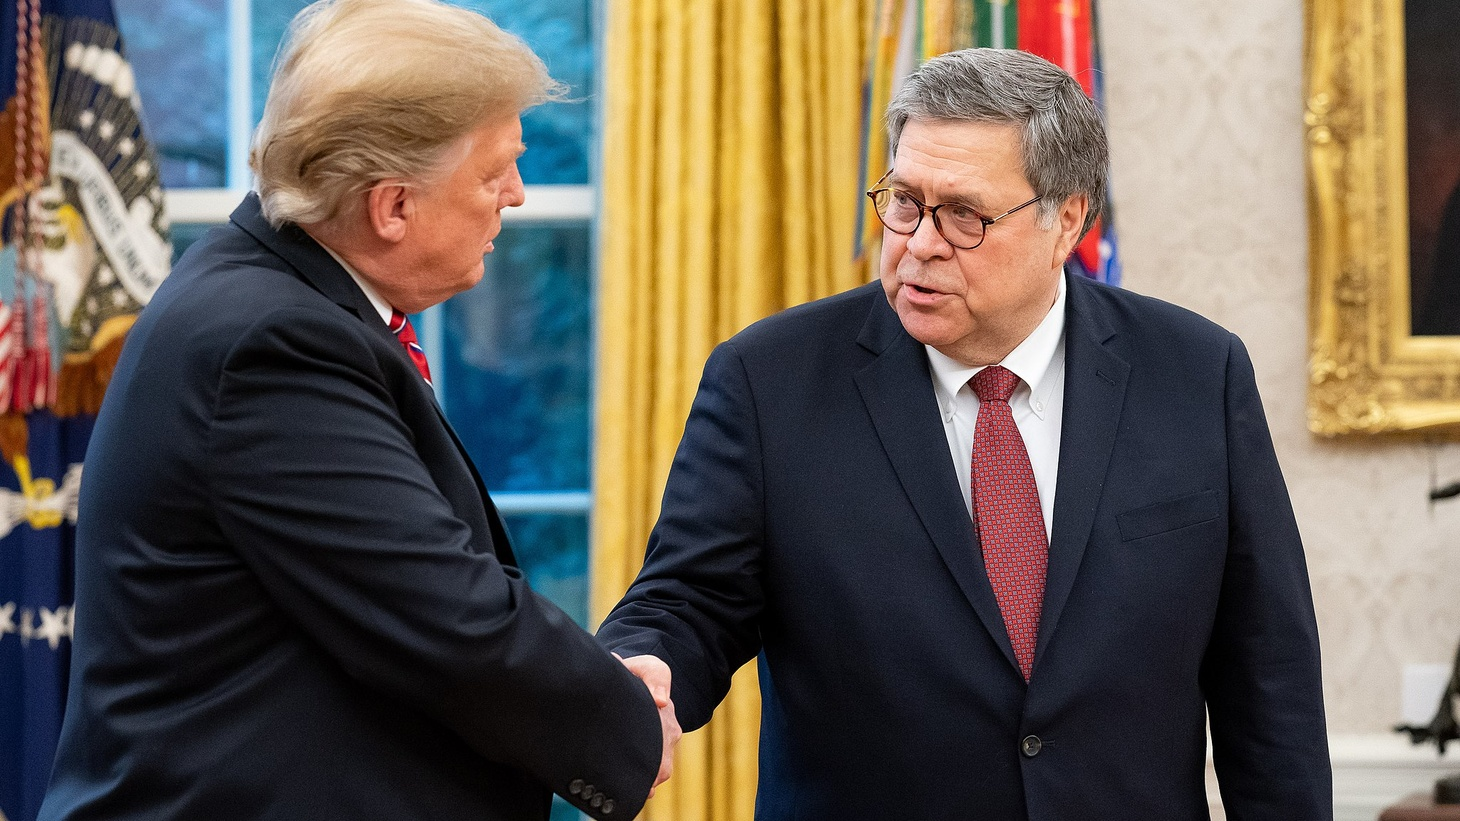 President Donald Trump shaking hands with William Barr